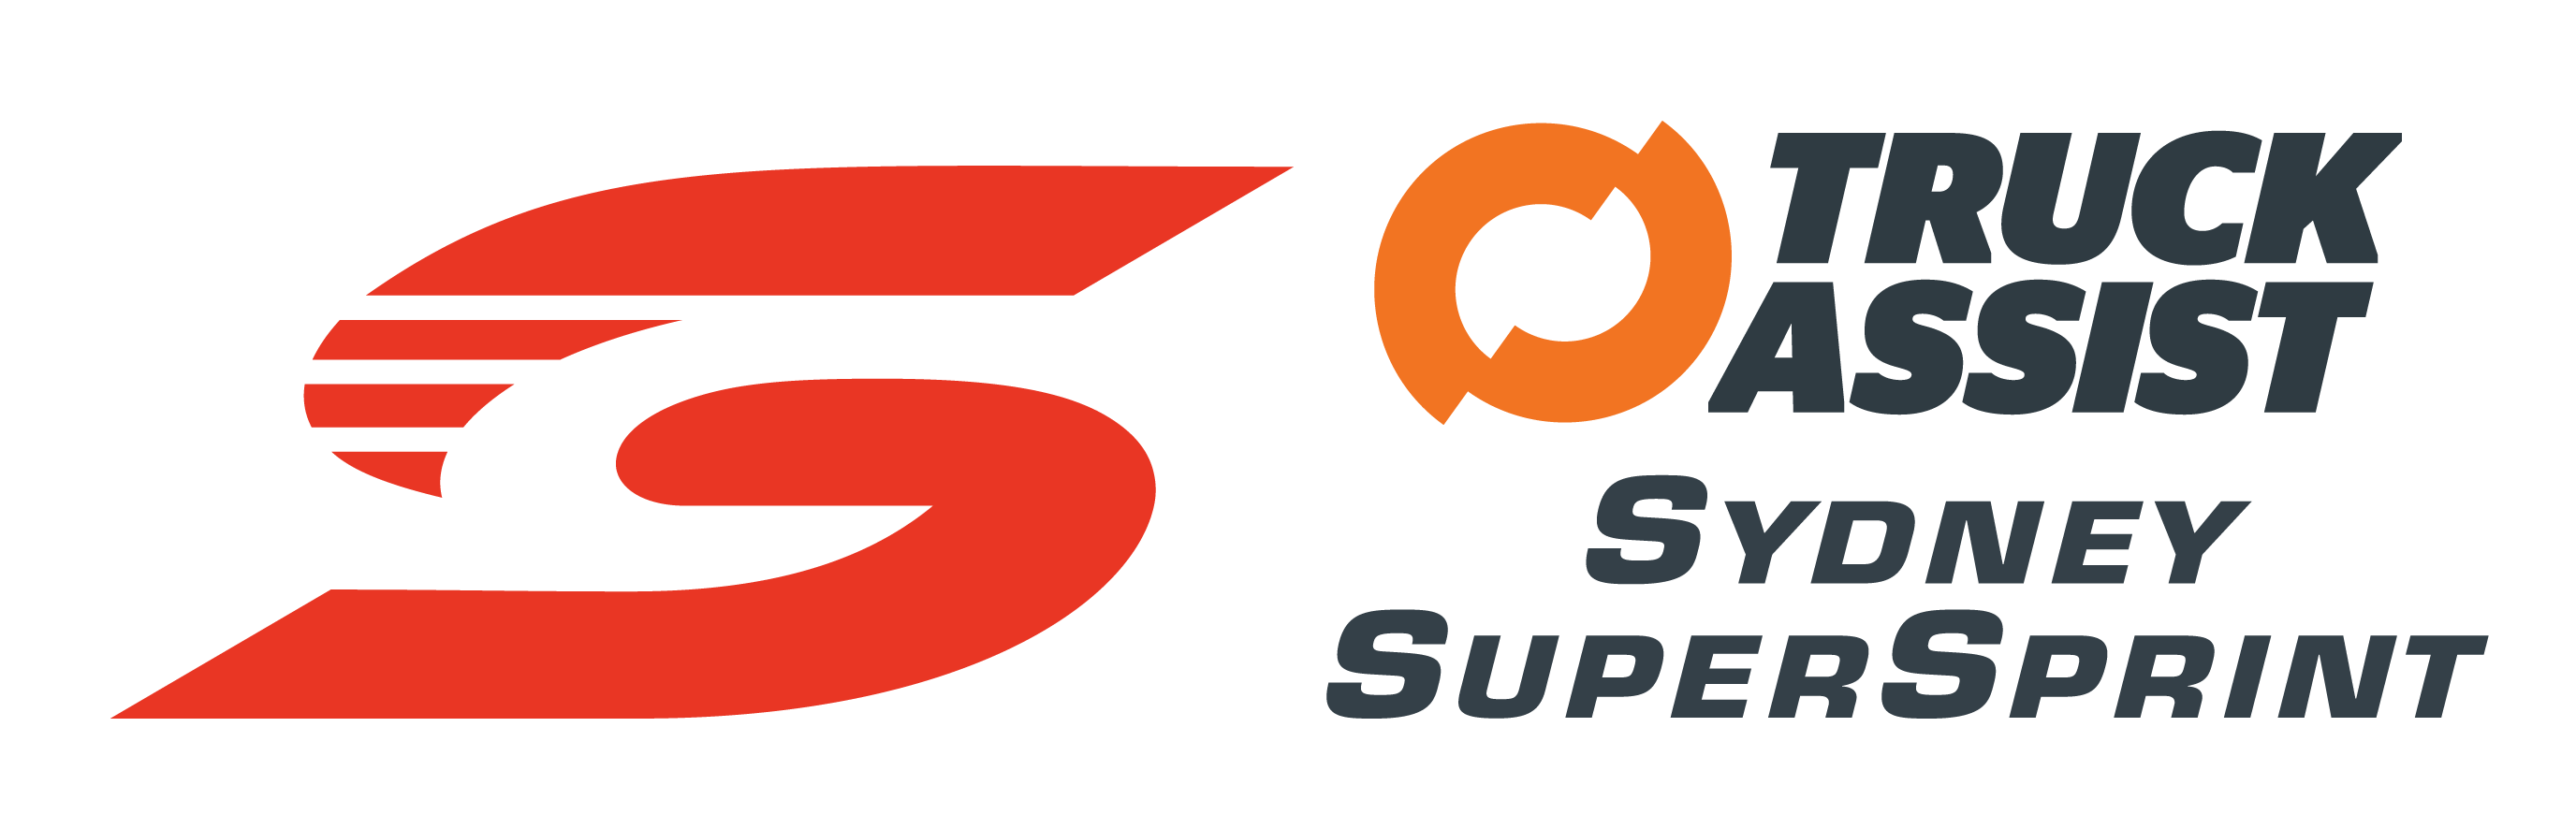 V8 Supercars - Truck Assist Sydney SuperSprint logo